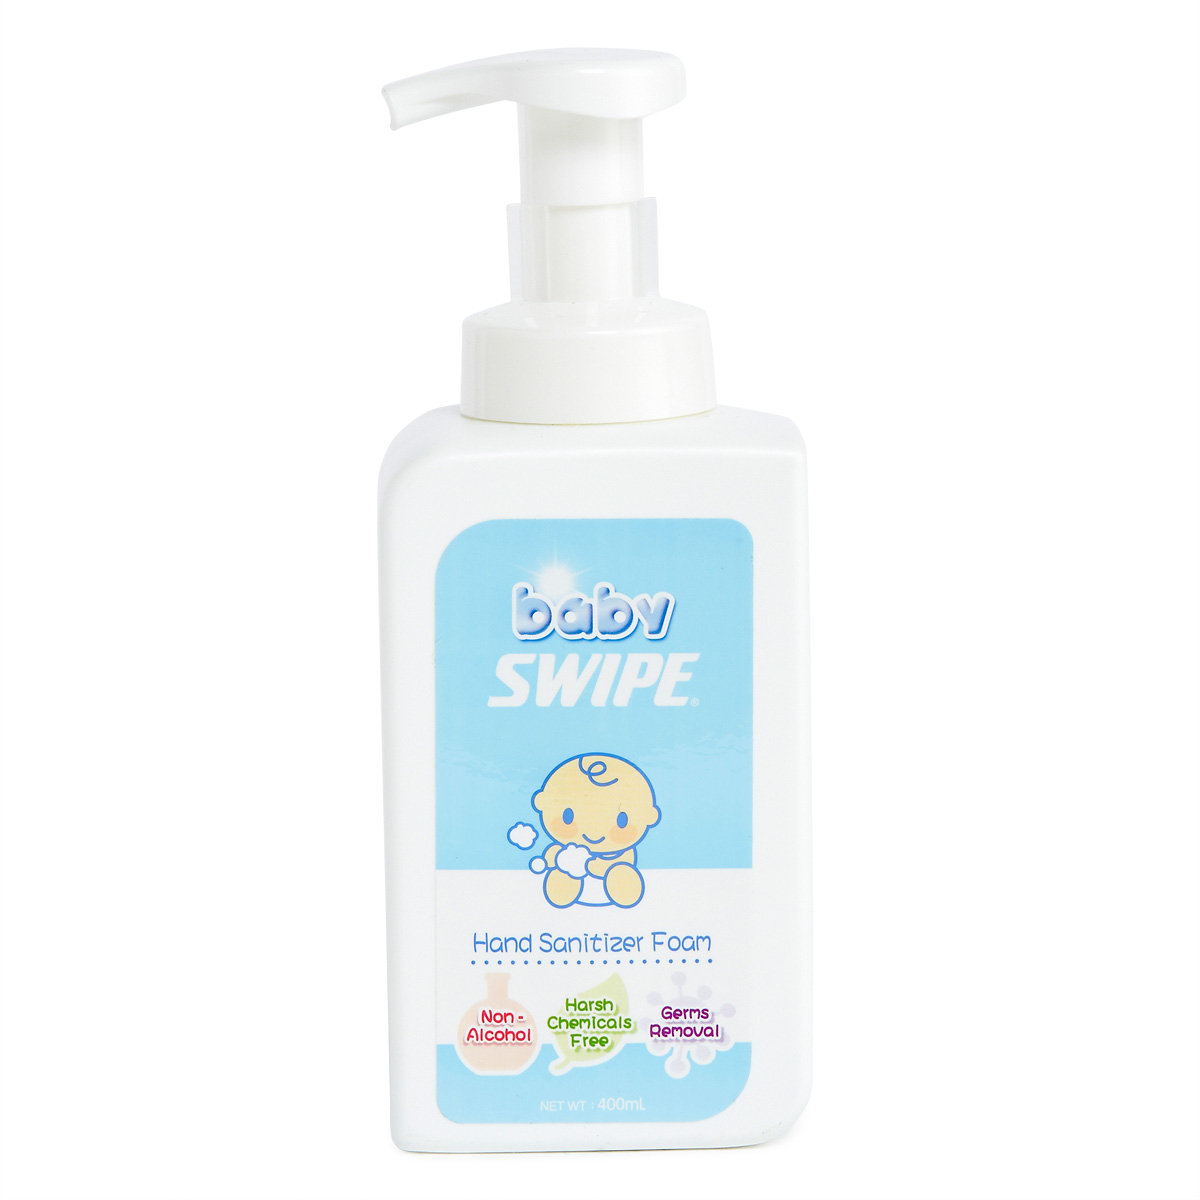 Pigeon Baby Powder Jasmine Rose Chamomile 200gr Spec Dan Daftar Wash 200 Ml Pr060402 Swipe Hand Sanitizer Foam